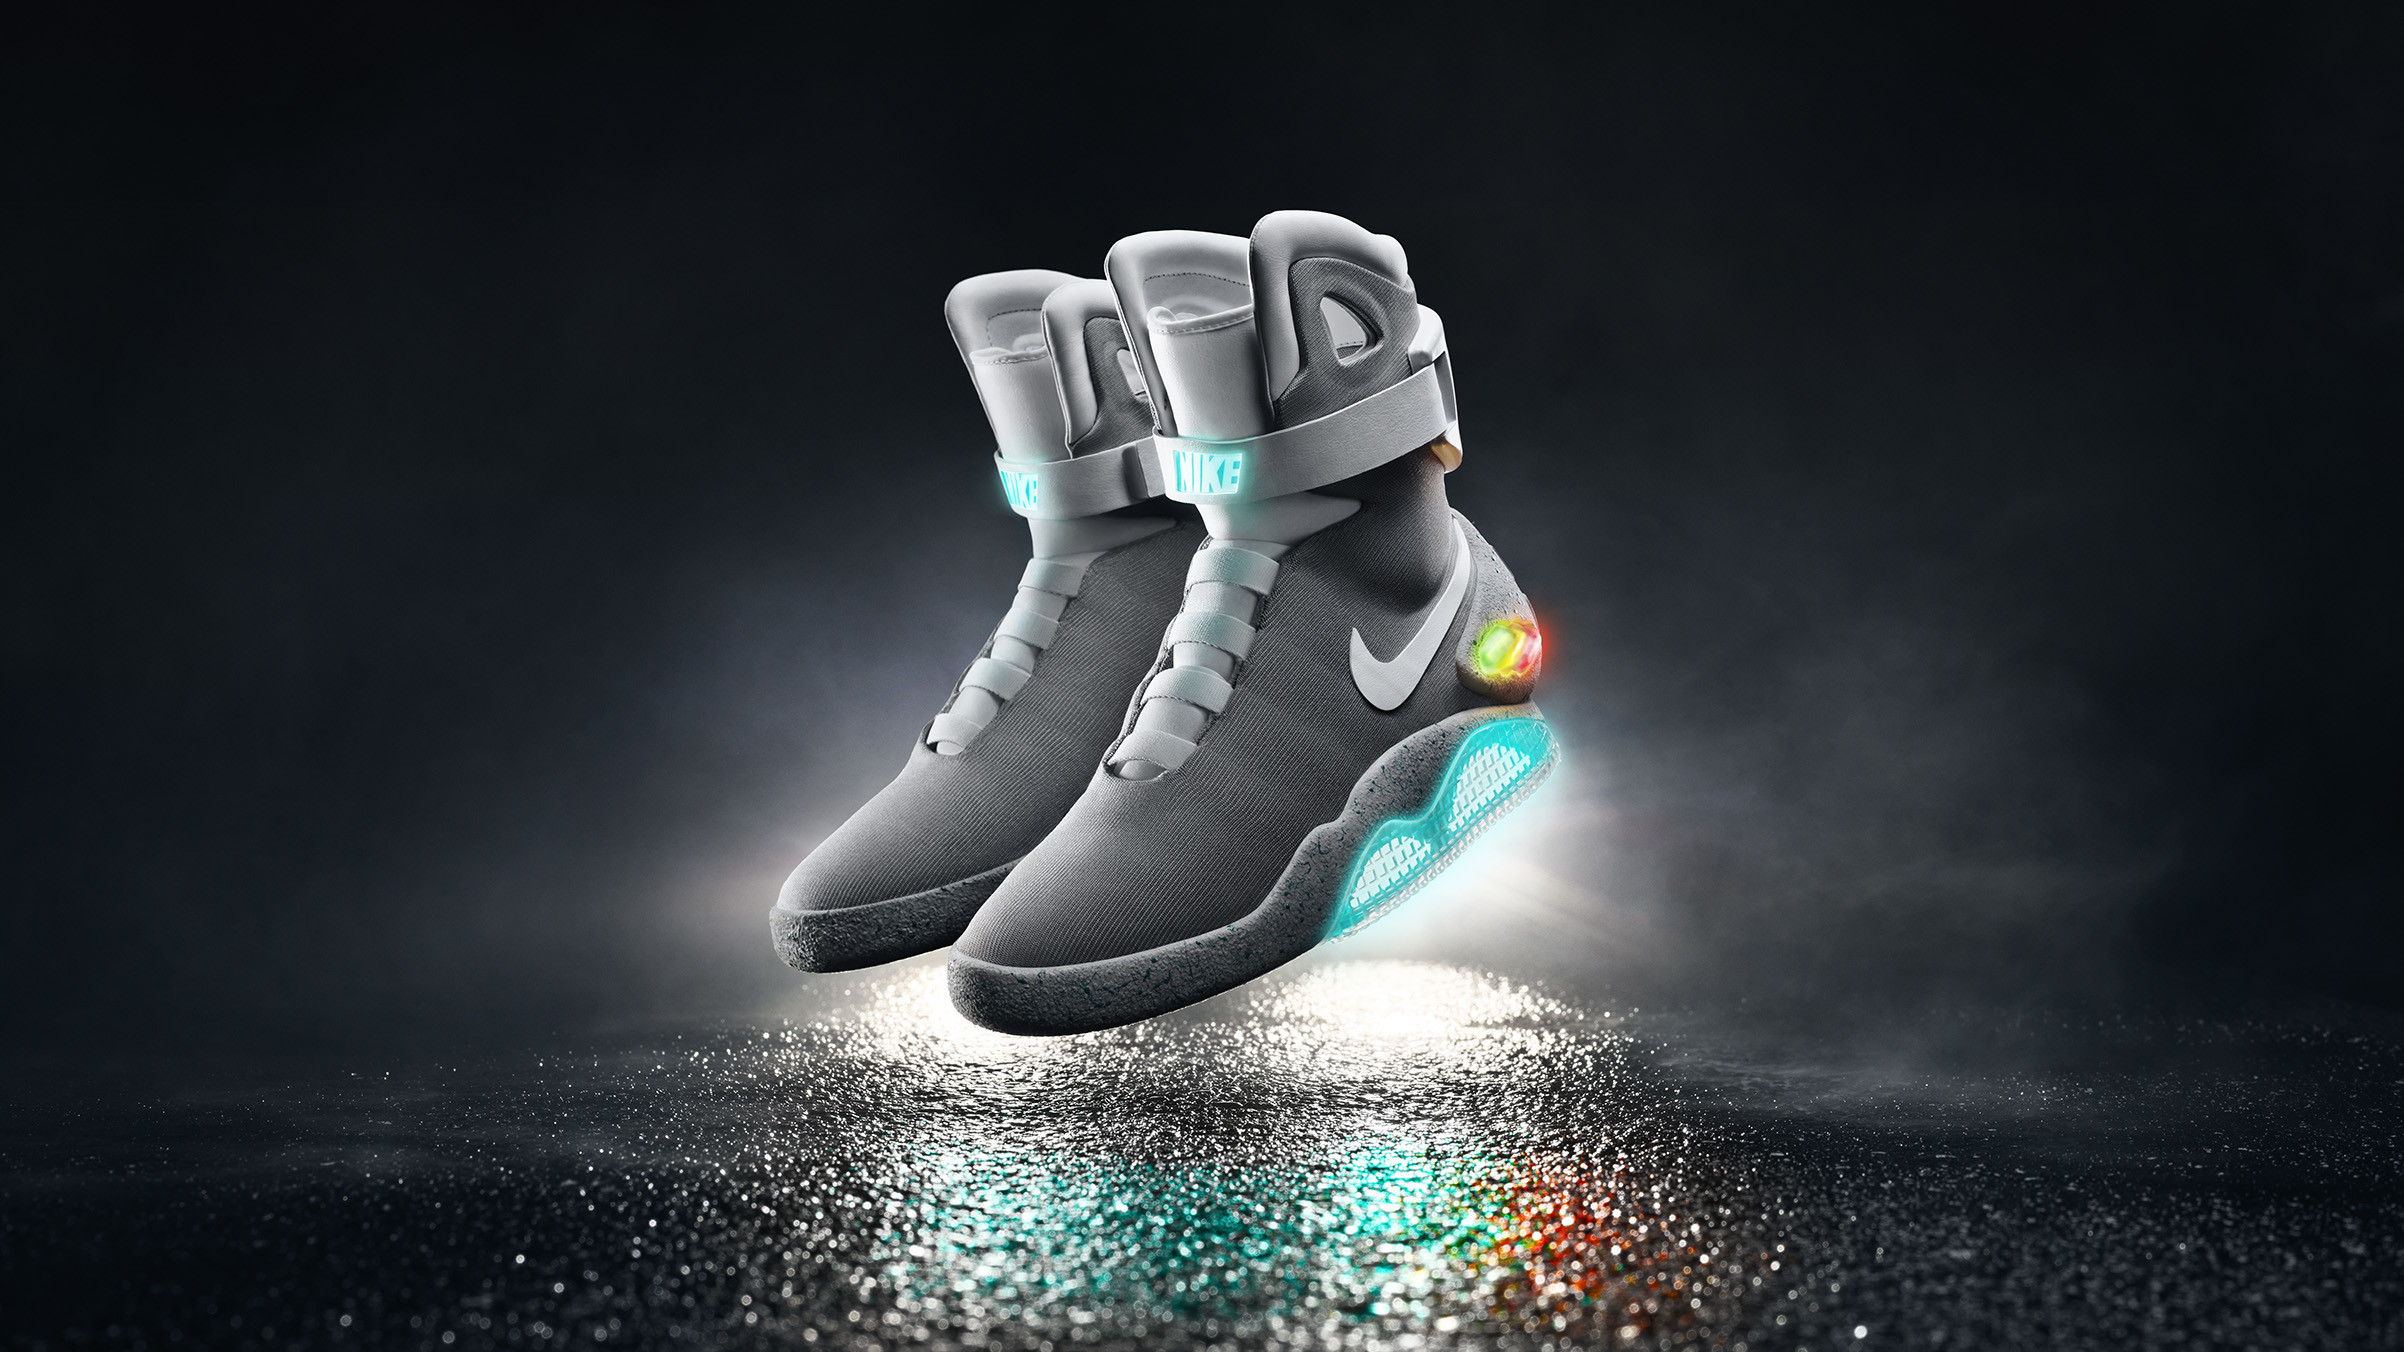 Res: 2404x1352, ... Nike Wallpaper for PC | Full HD Pictures